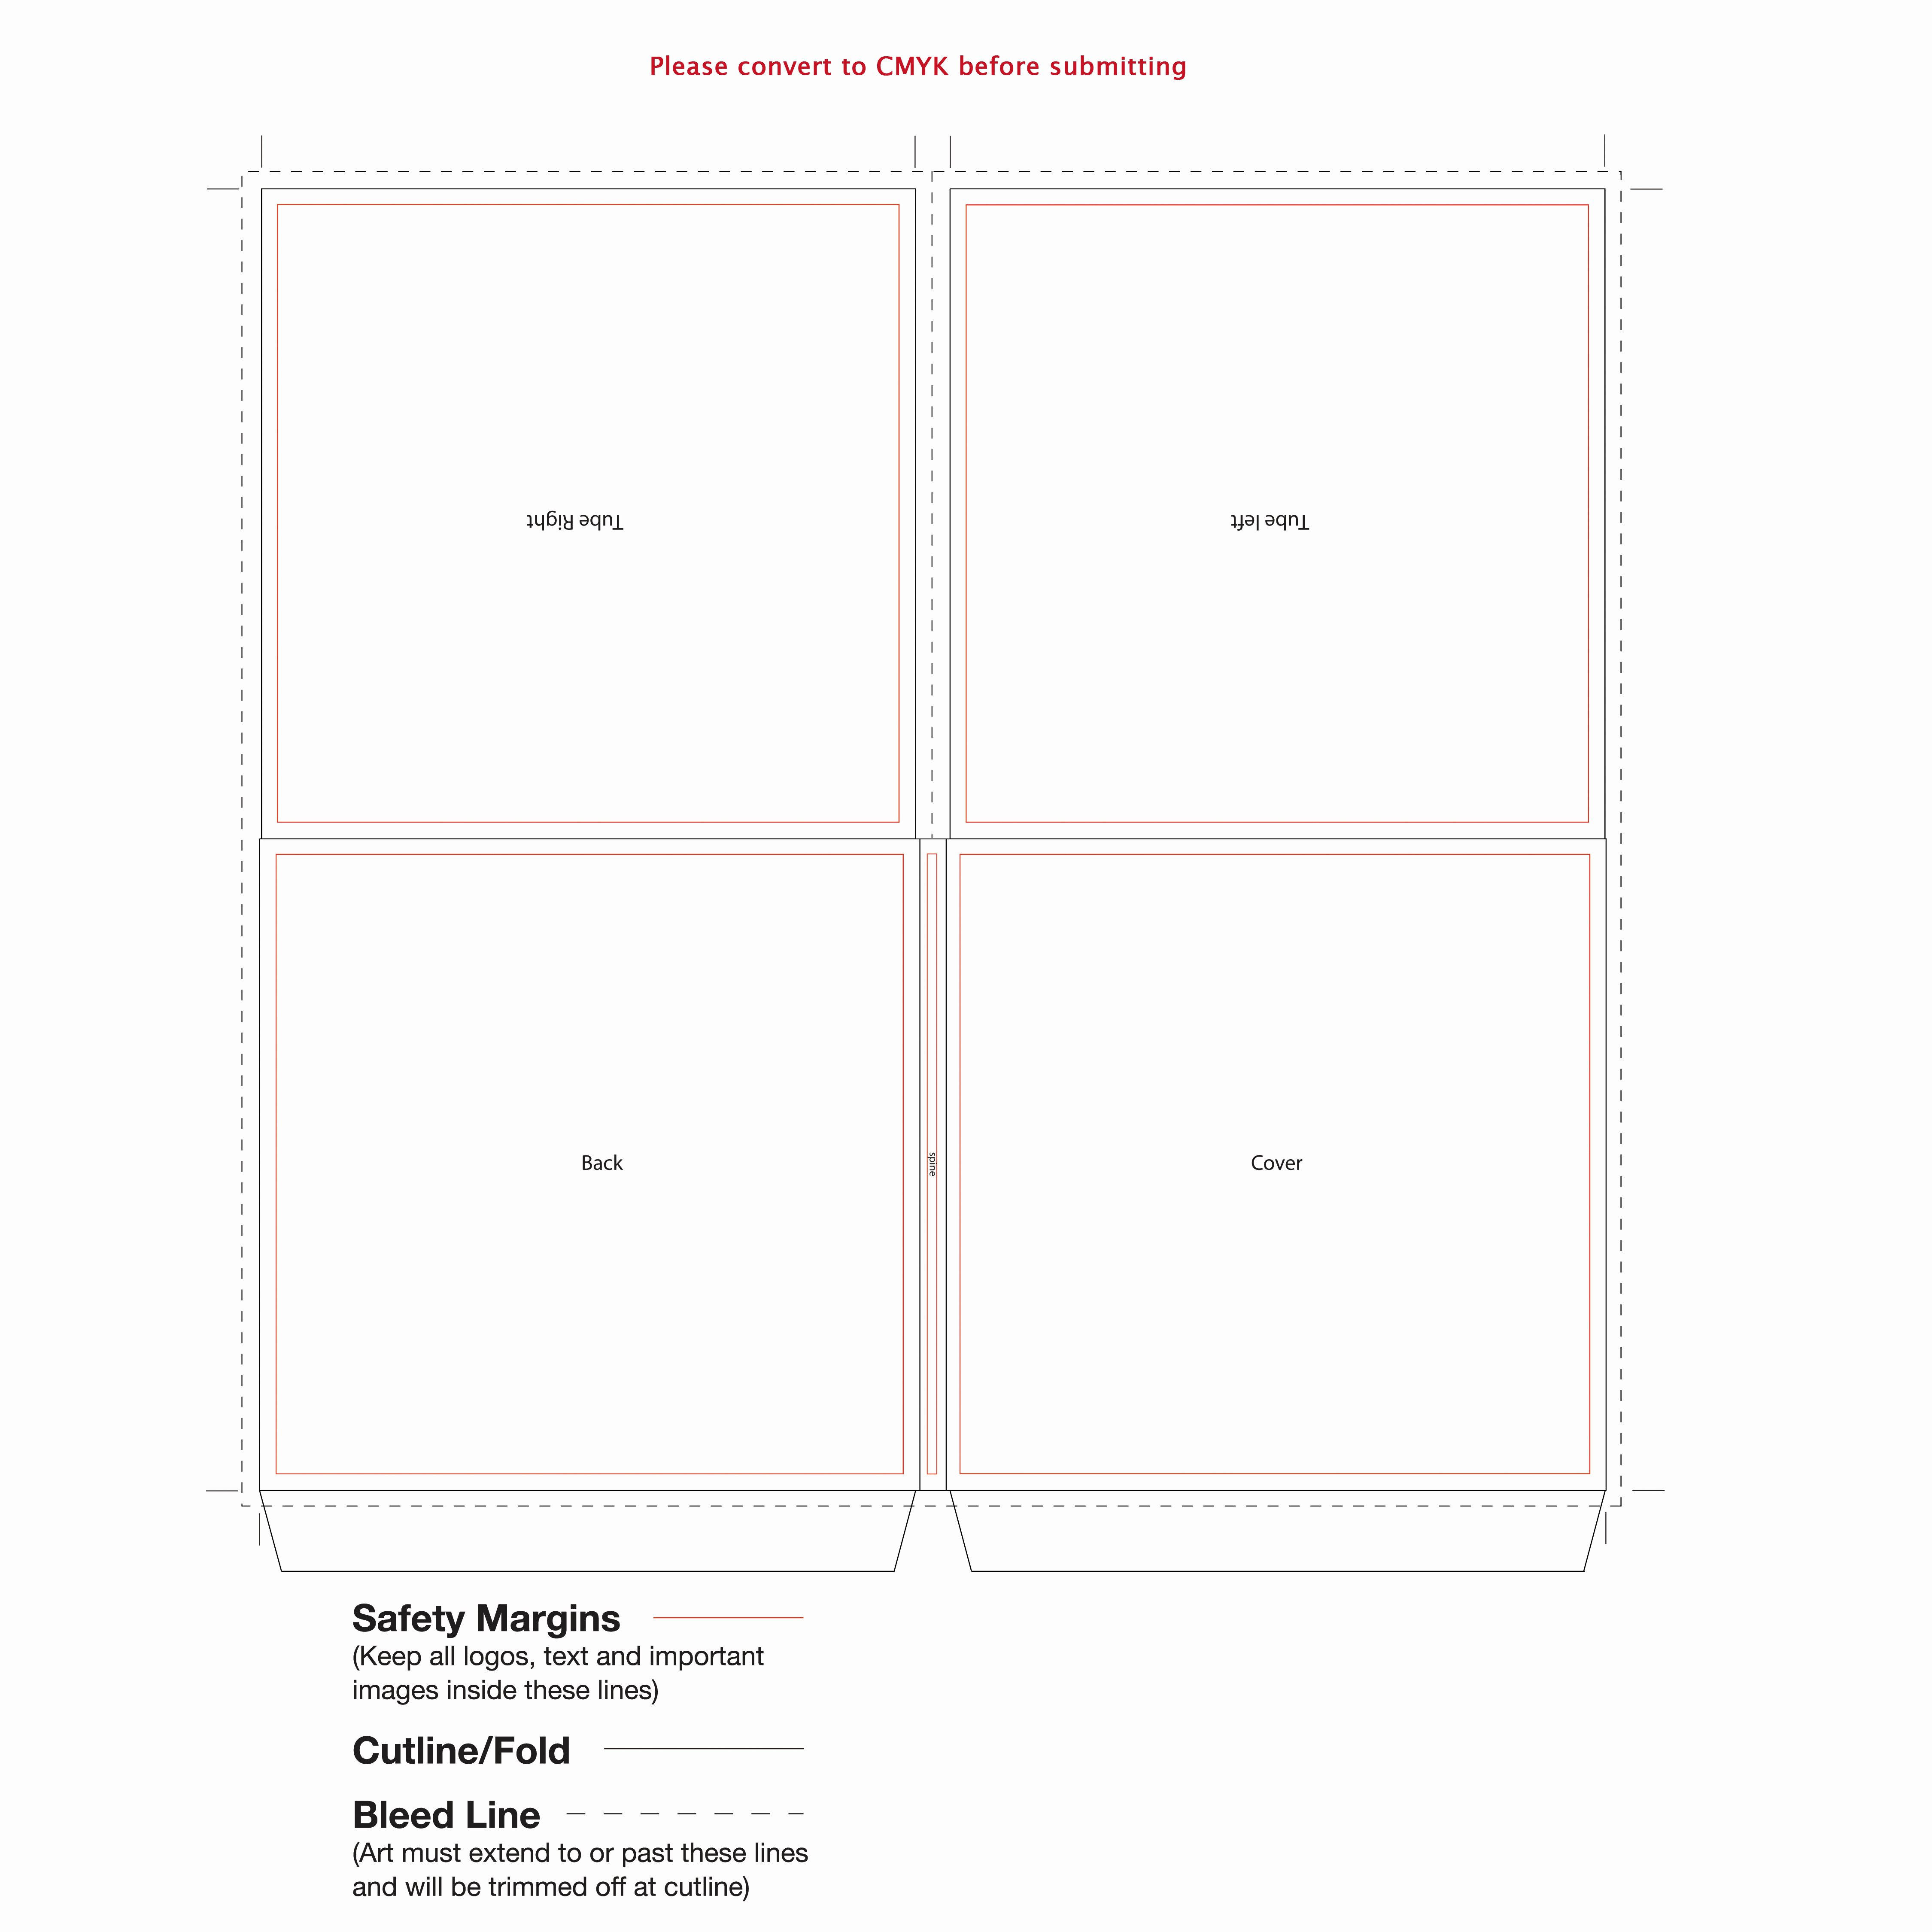 Cd Liner Notes Template Unique 4 Panel Cardboard Tube Sleeve Template for Cd Duplication